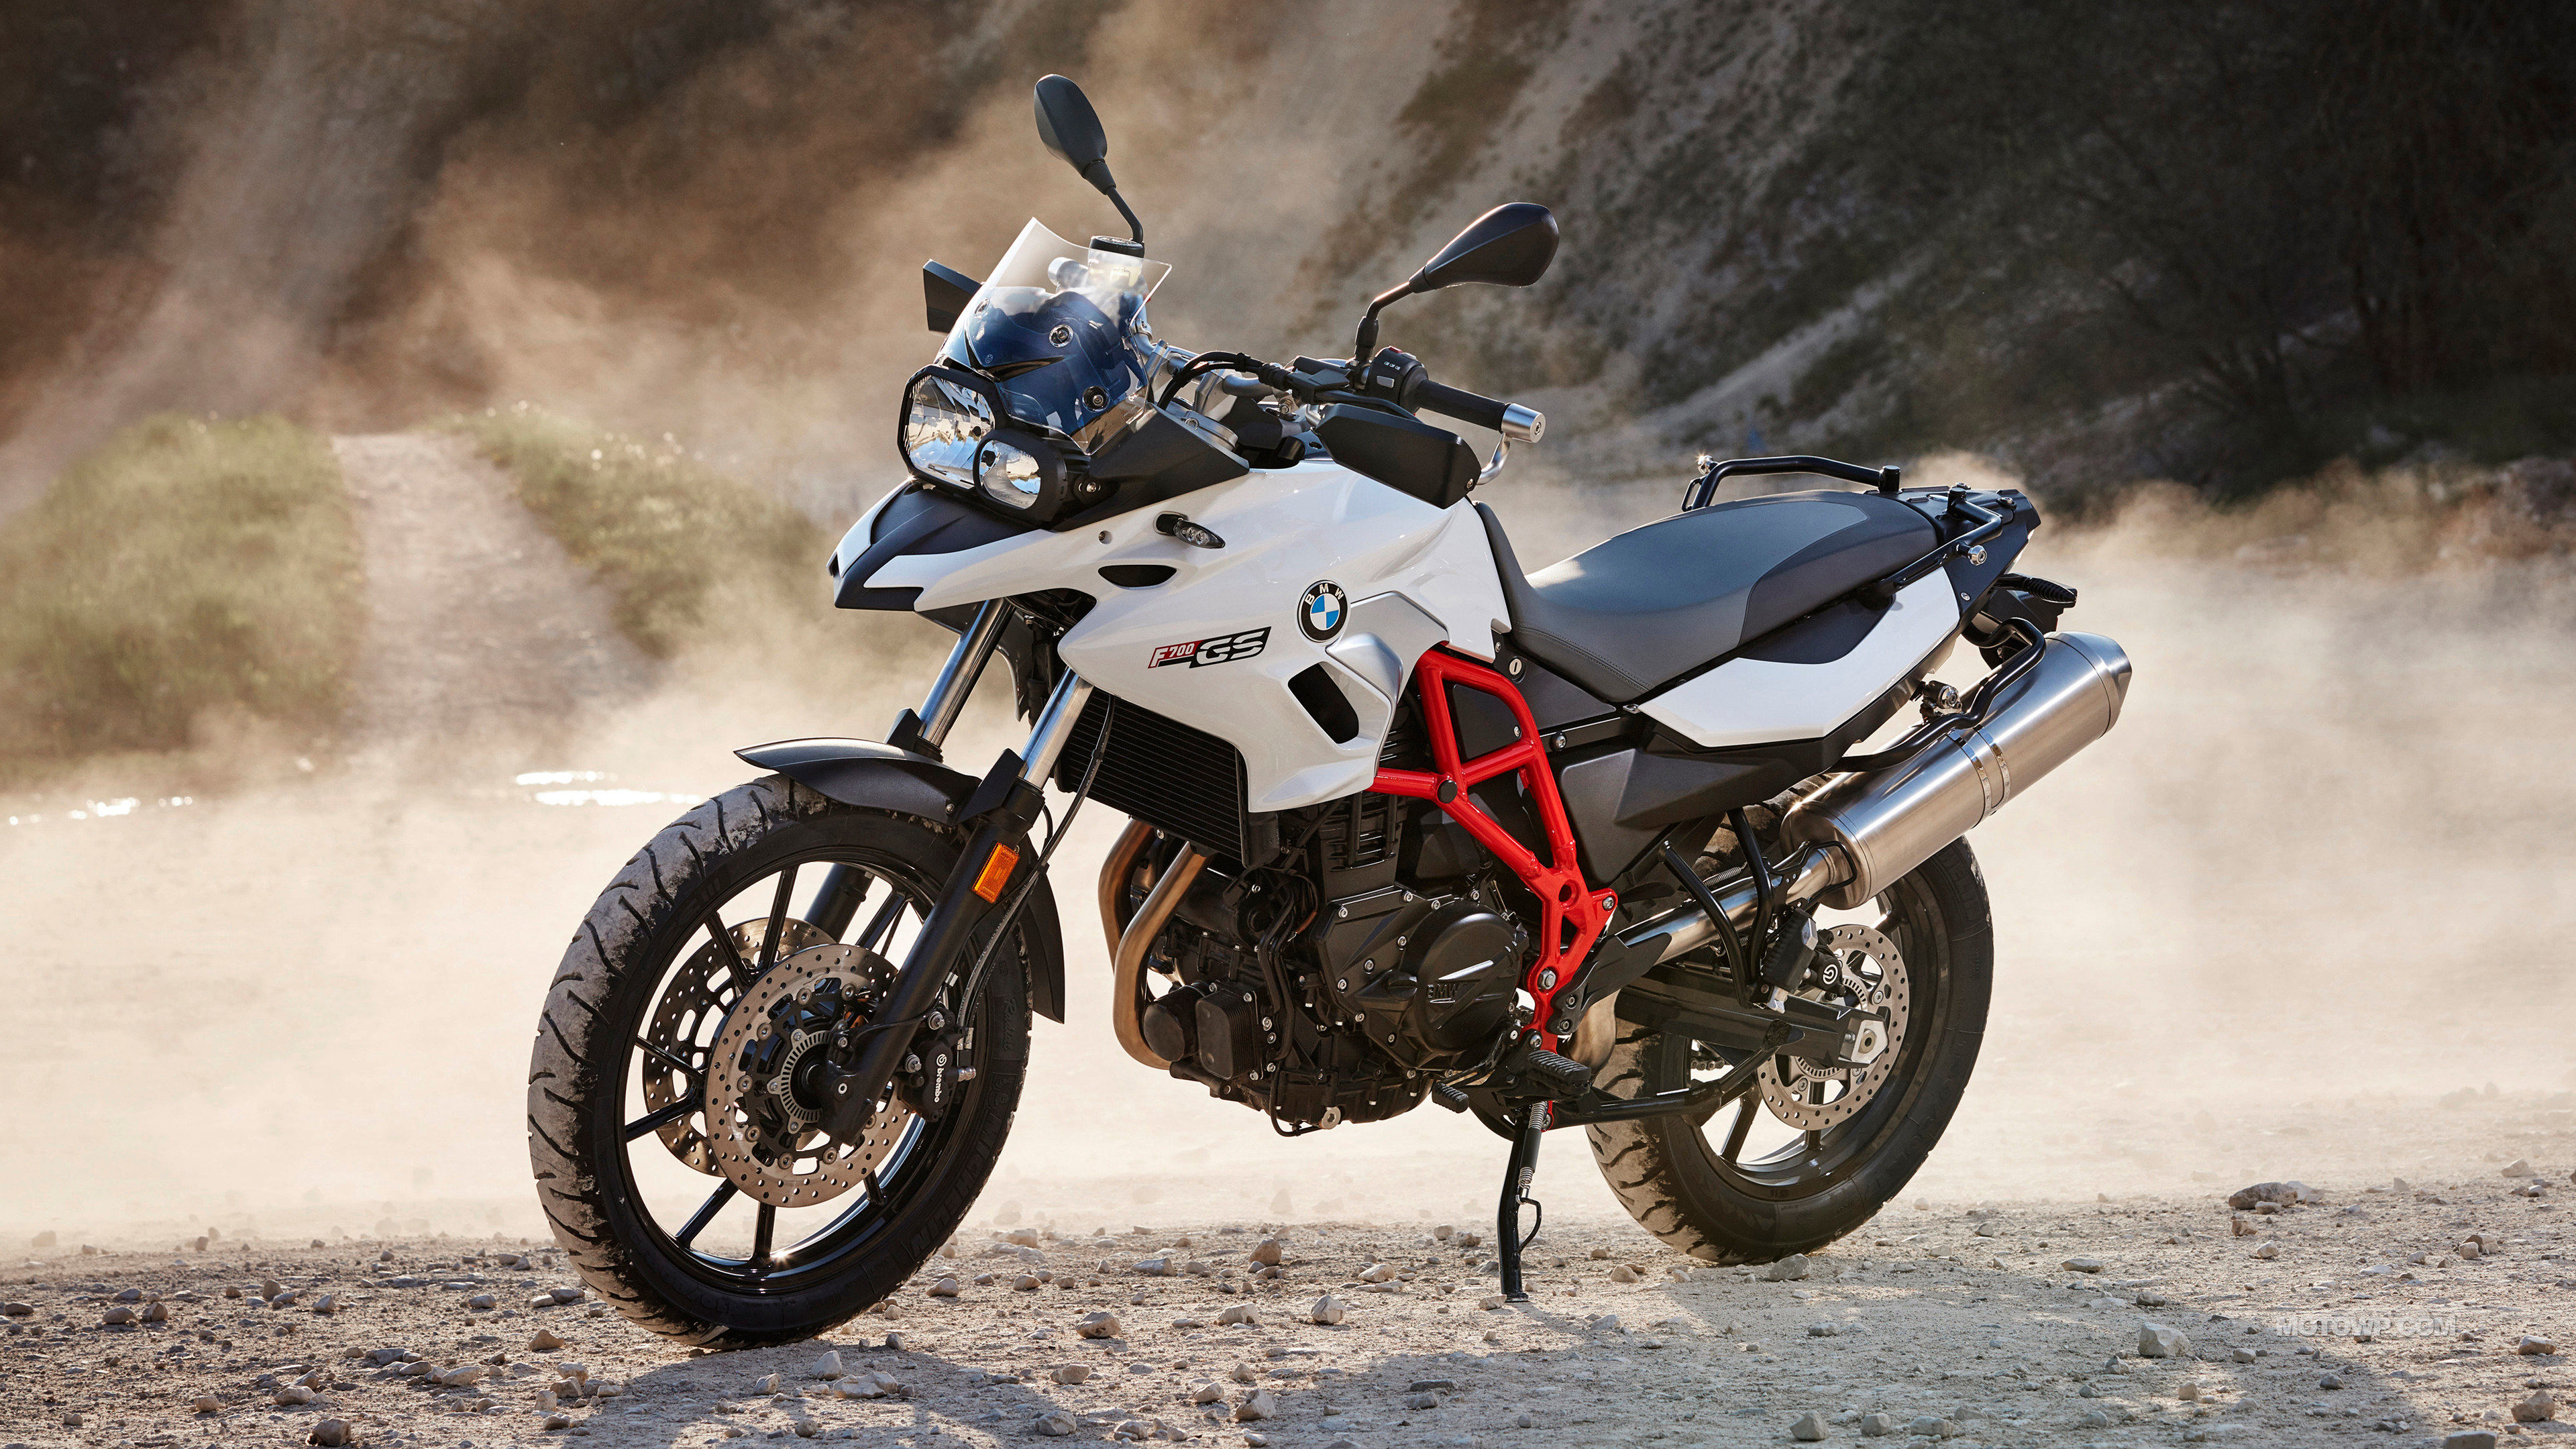 BMW GS Wallpapers - Top Free BMW GS Backgrounds ...